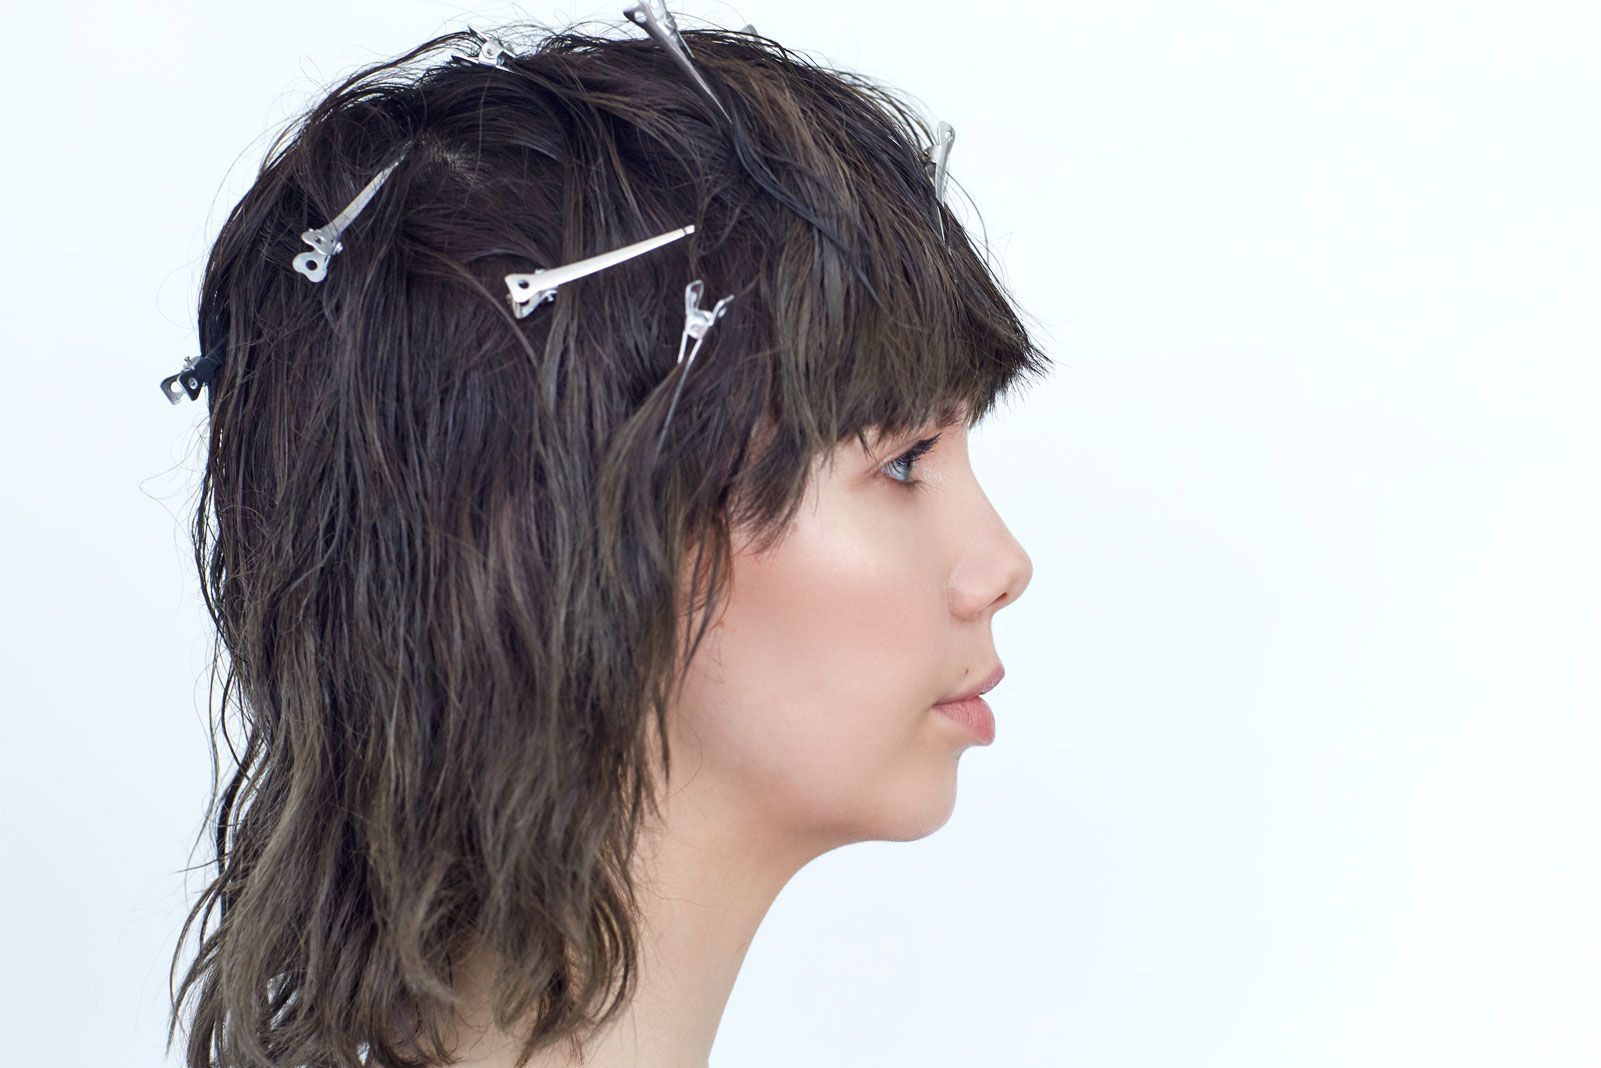 This particular style presented a challenge for Moore. When hair air-dries naturally, it can go flat up top, which is why Moore likes to use these clips to just create irregularities in the root for lift.Moore placed the clips randomly to make sure the hair sections dried in different directions to add truly imperfect texture. #refinery29 http://www.refinery29.com/air-dry-hair-tips-hairstory-stylists#slide-13